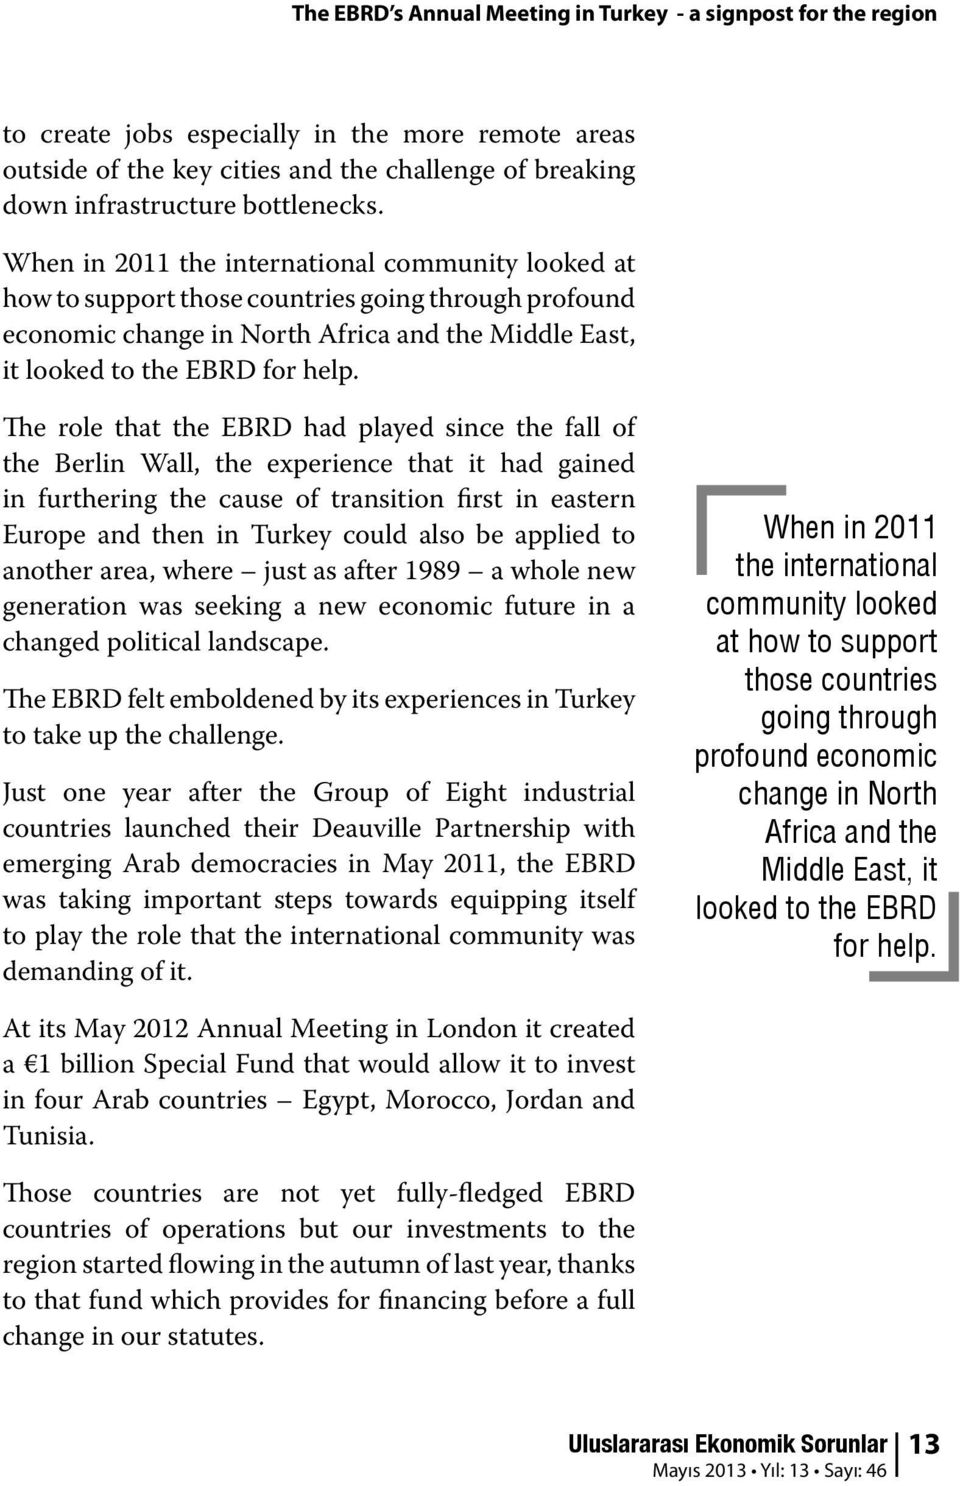 When in 2011 the international community looked at how to support those countries going through profound economic change in North Africa and the Middle East, it looked to the EBRD for help.